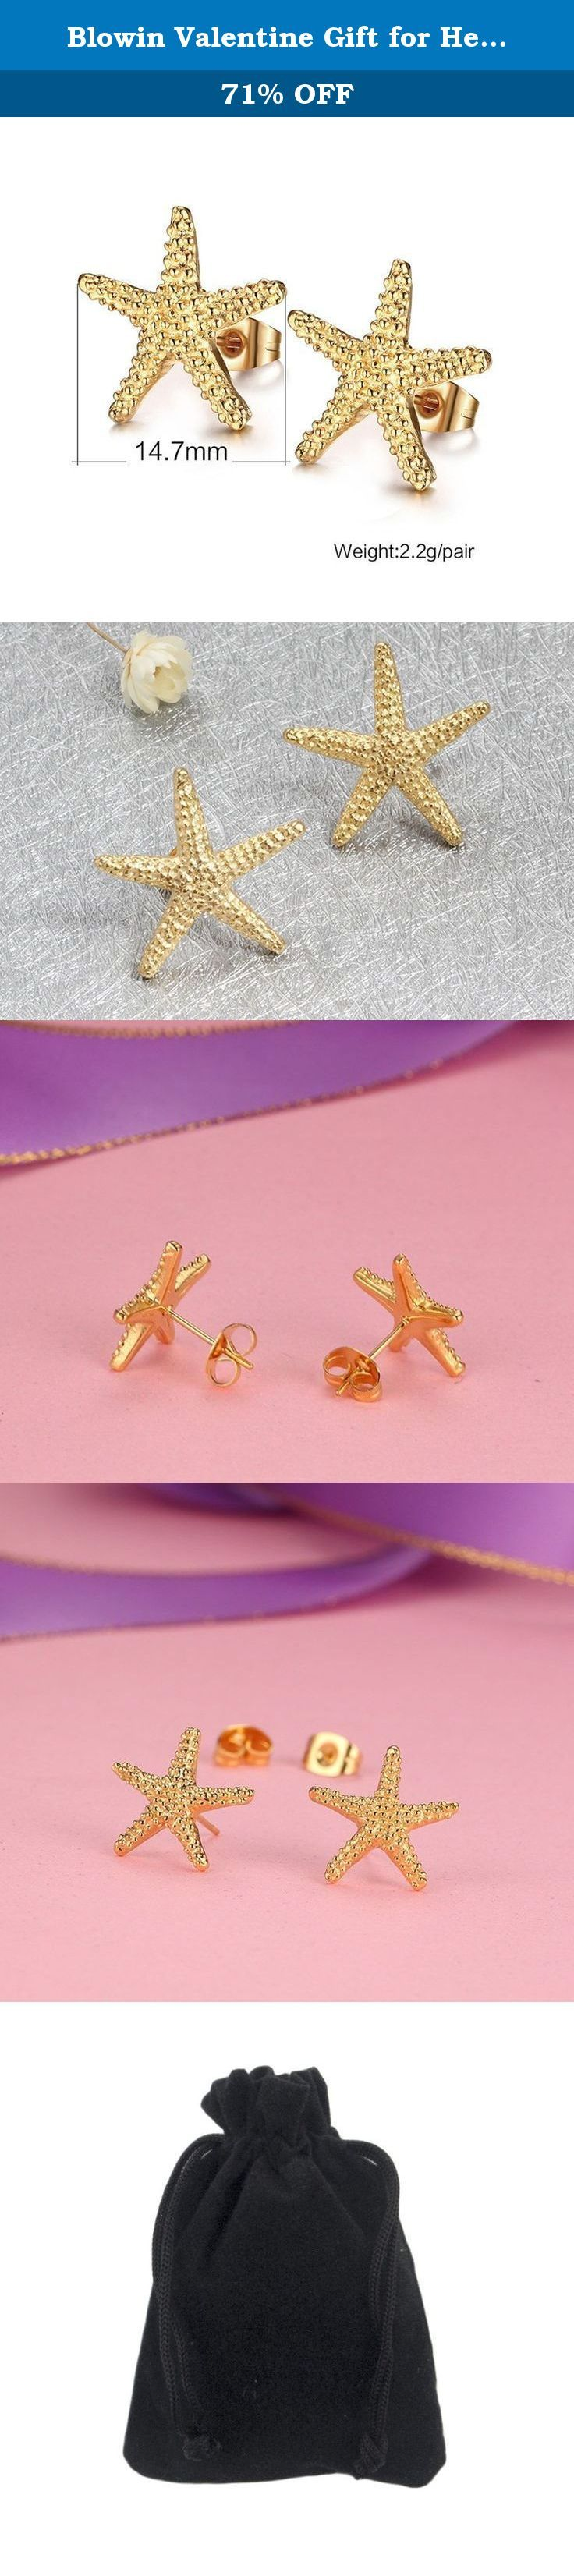 Blowin Valentine Gift for Her Womens Golden Stainless Steel Ear Studs Starfish Stud Earrings, 2pcs. Blowin Charm Womens Golden Stainless Steel Ear Studs Starfish Stud Earrings, 2pcs Material: Stainless Steel; Hypoallergenic Package Included: 2pcs Blowin Stainless Steel Earrings 1 x Gift bag Features Stainless Steel Jewelry Green high-grade green jewelry - it is completely not produce any side effects on the human body. Never fade or tarnish - Its texture is very tough,and does not tarnish...